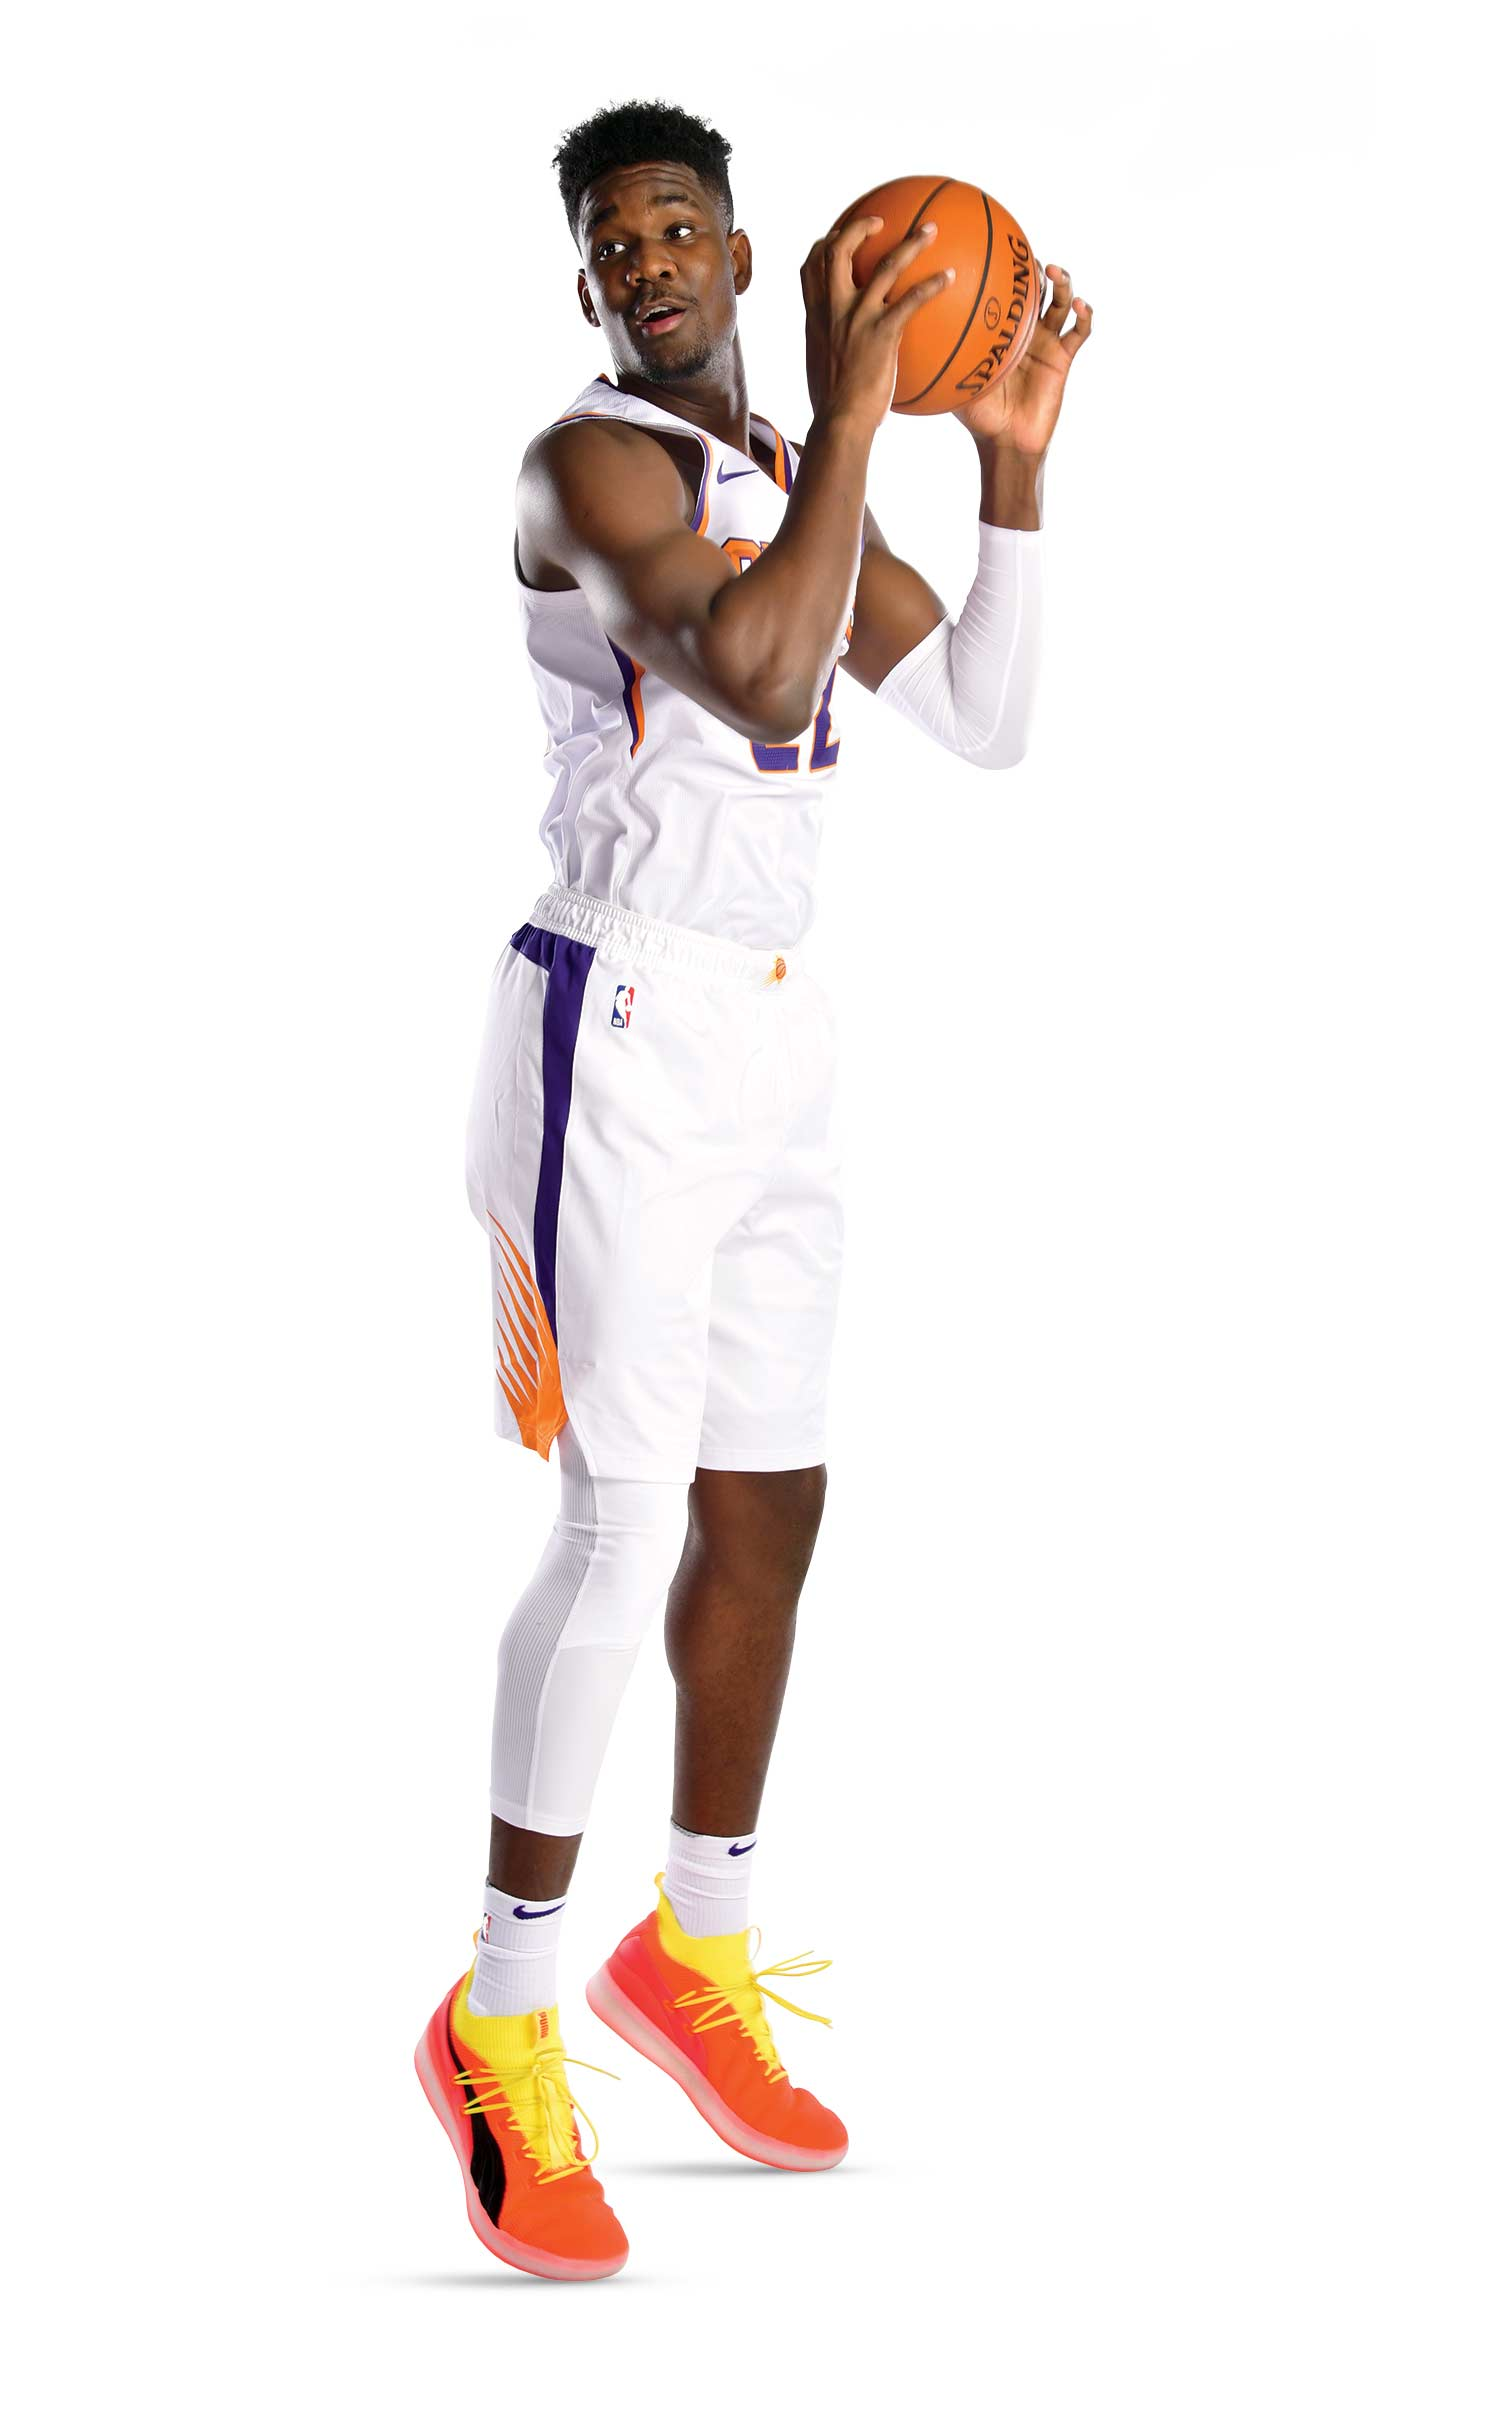 Photo by Barry Gossage, NBA/Getty Images; Hillcrest prep alum Deandre Ayton